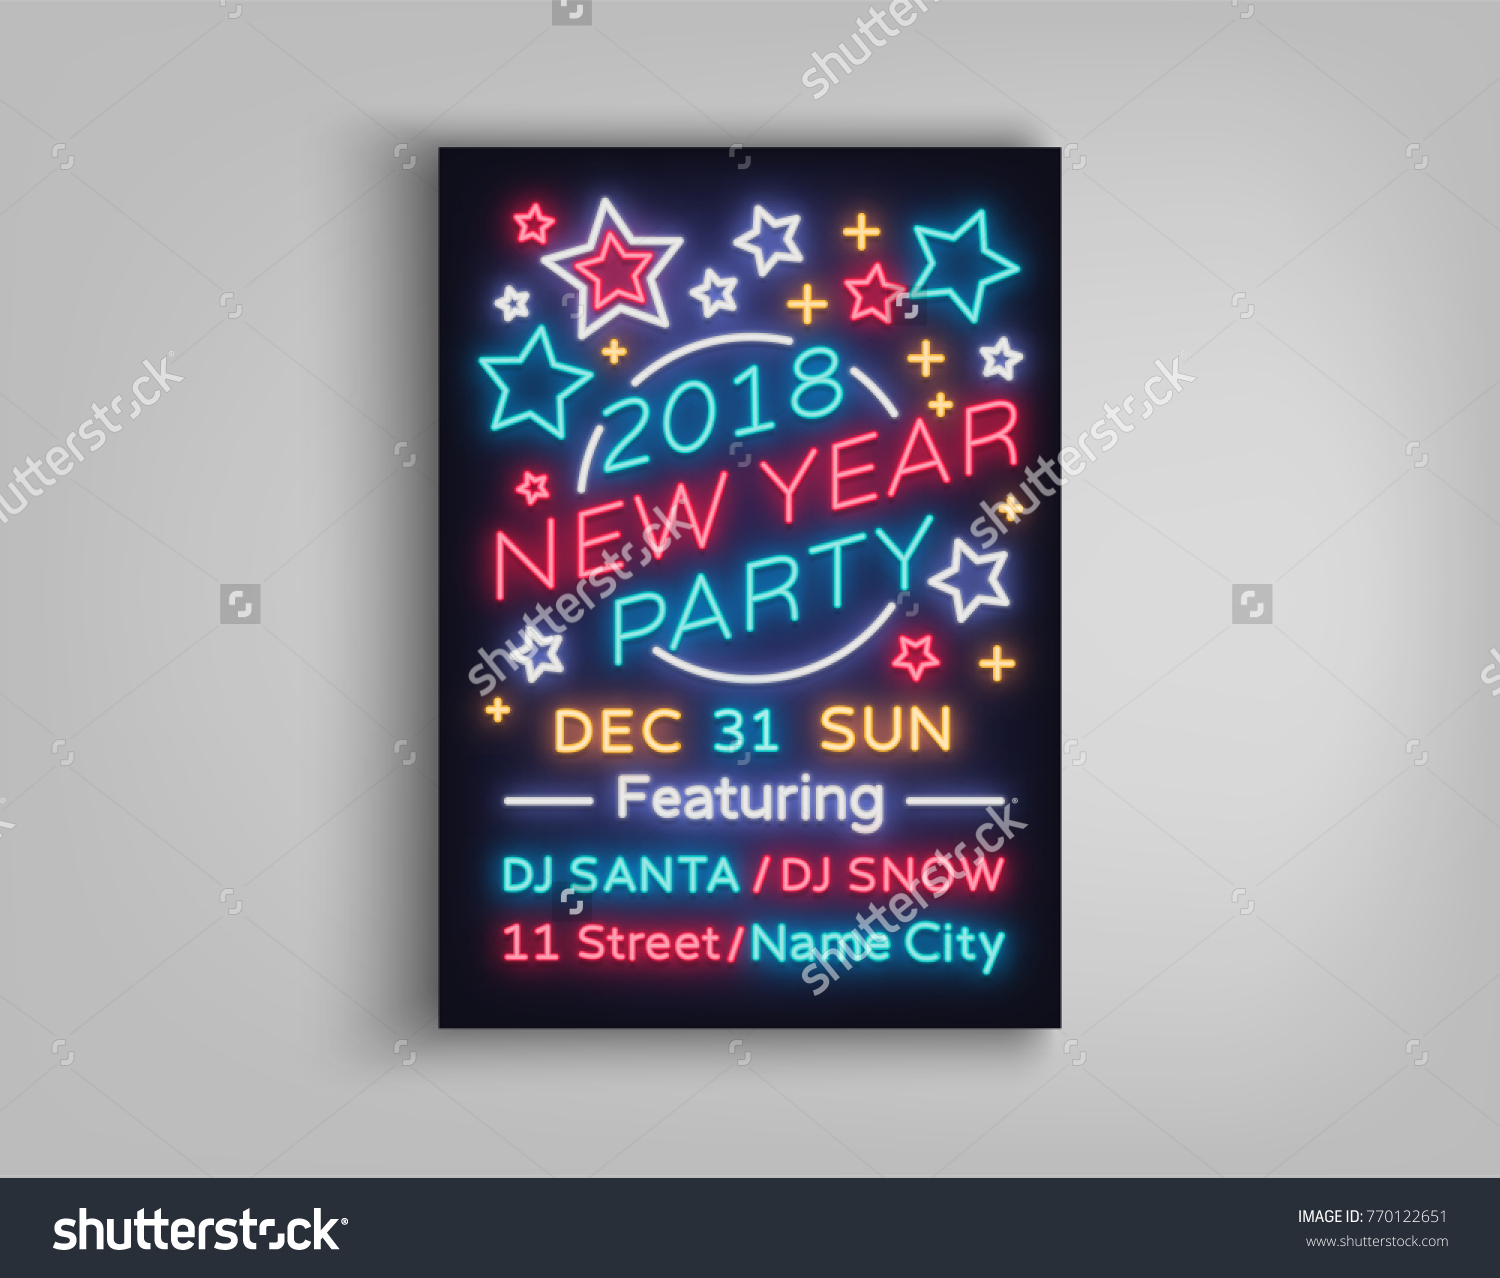 new year 2018 party poster in neon style happy new year invitation card for